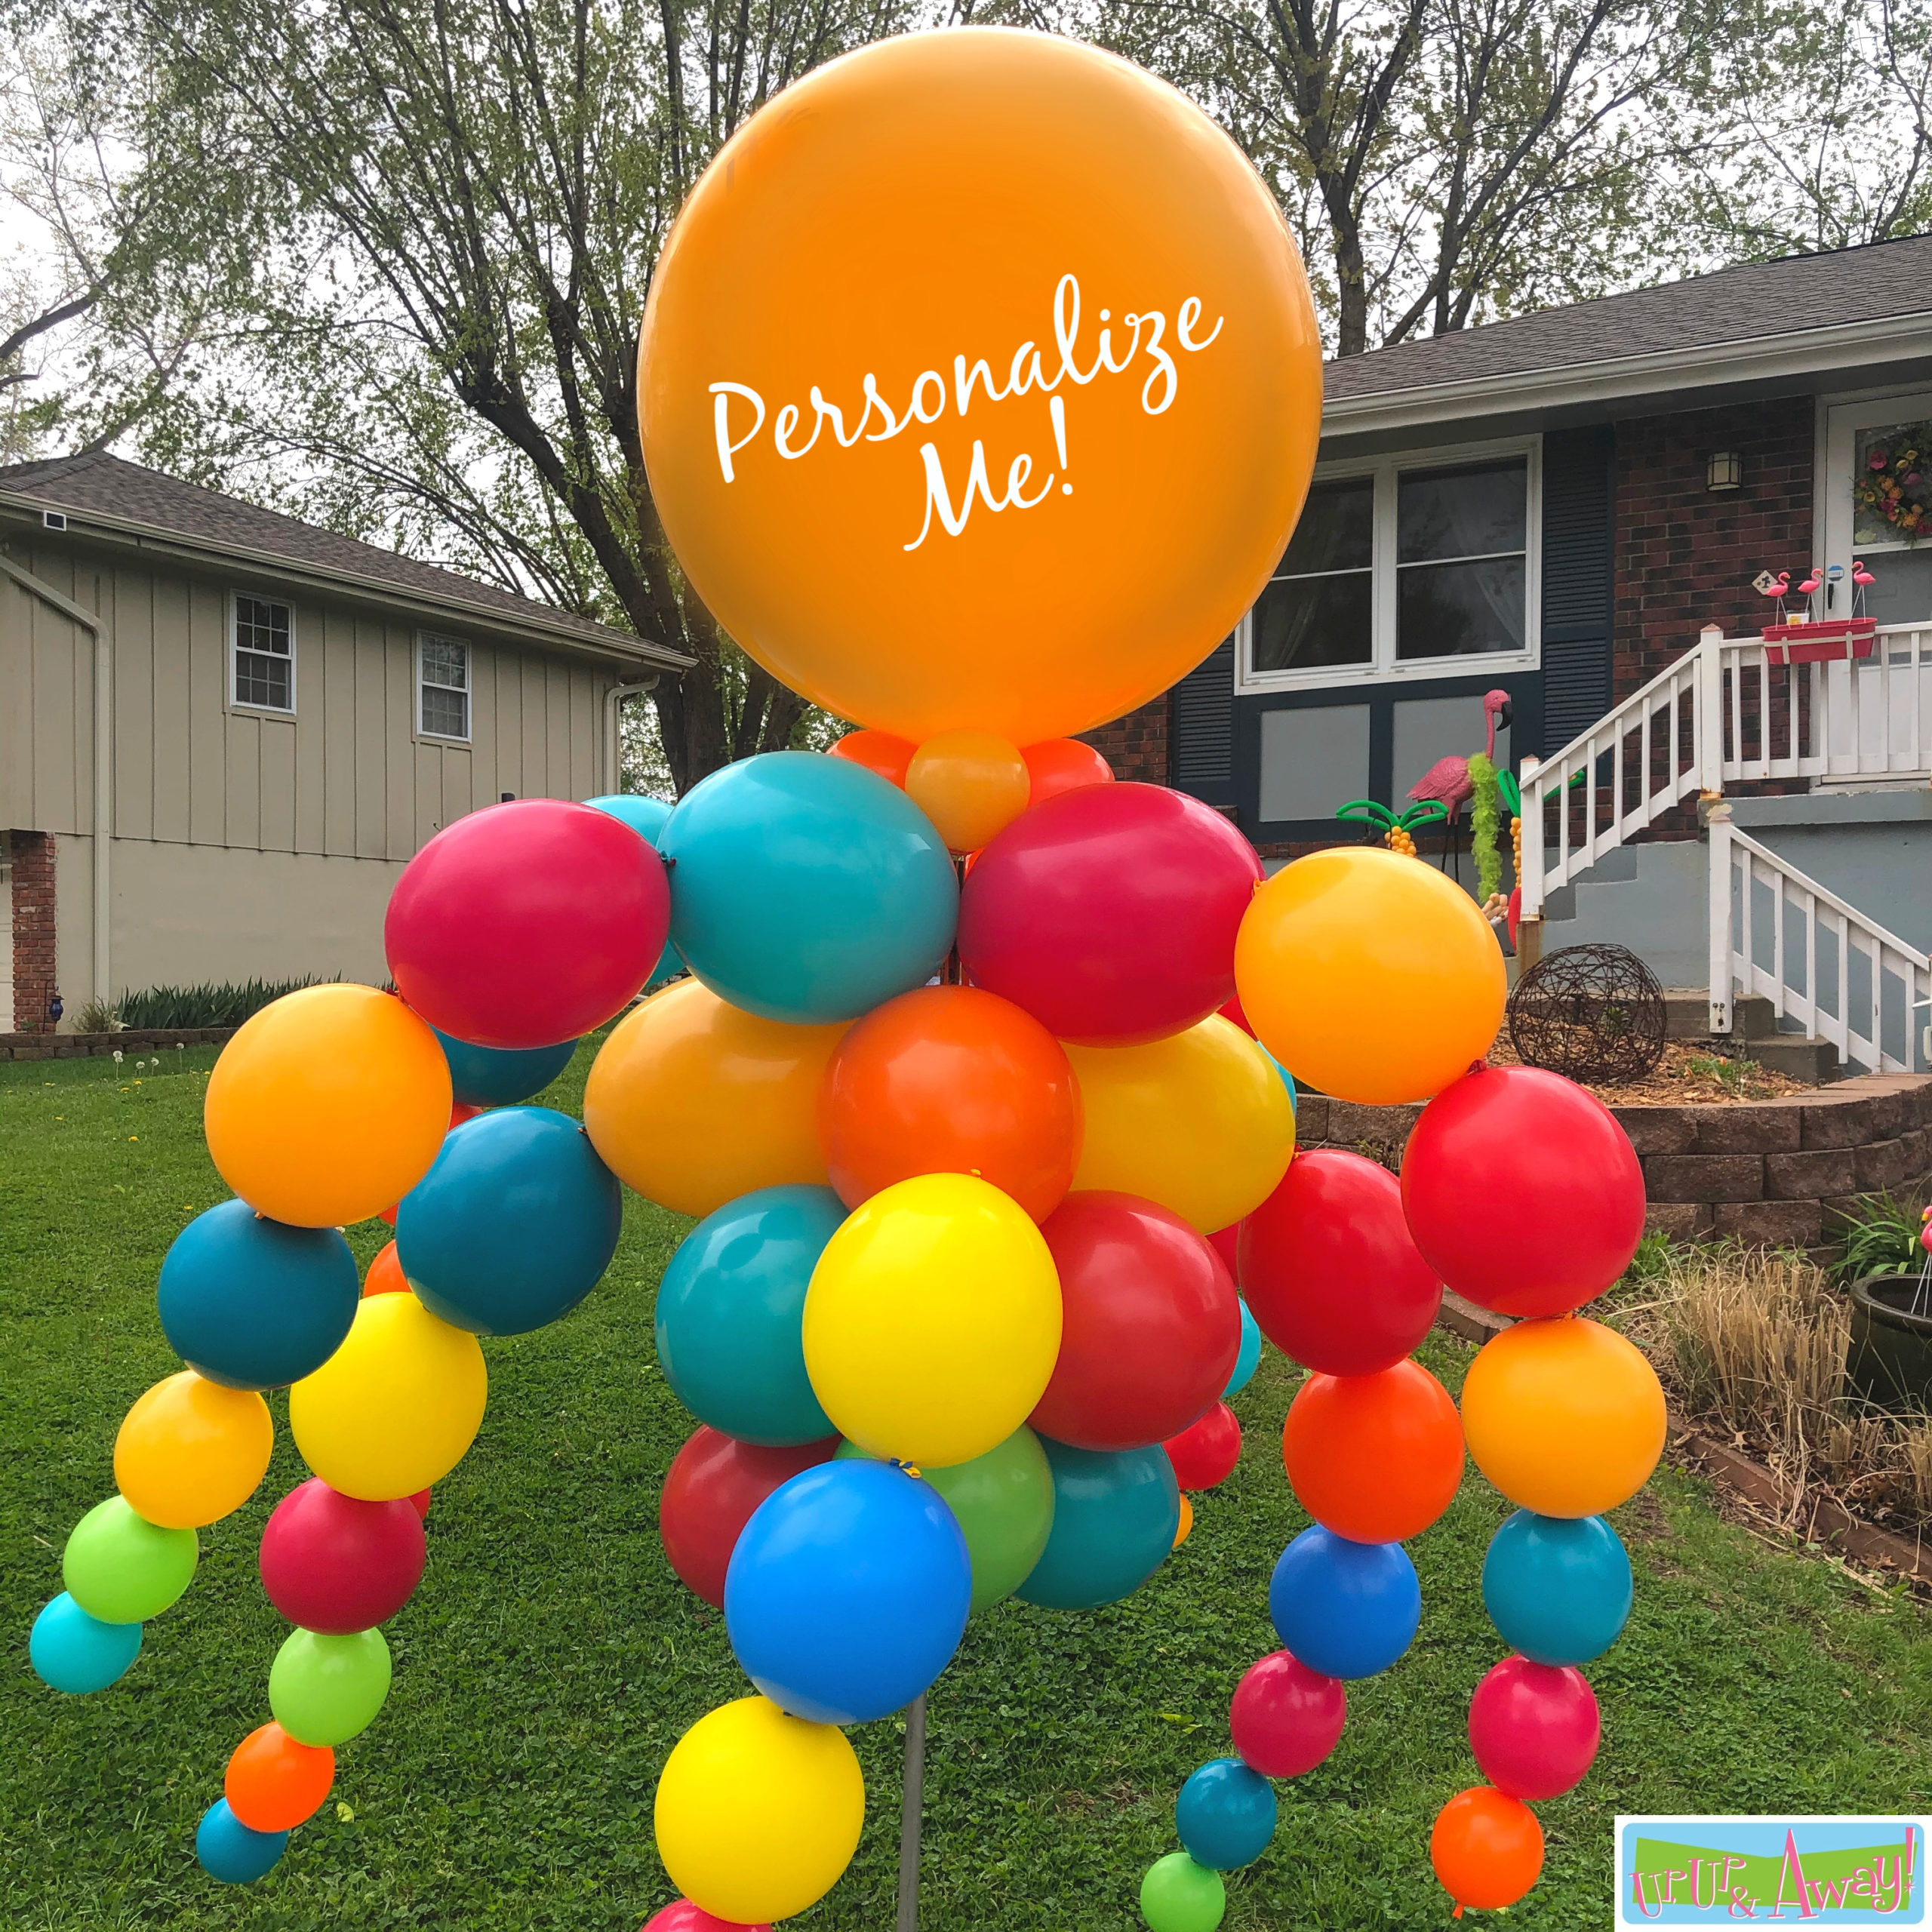 MegaWaver Personalized | Up, Up & Away! Balloons